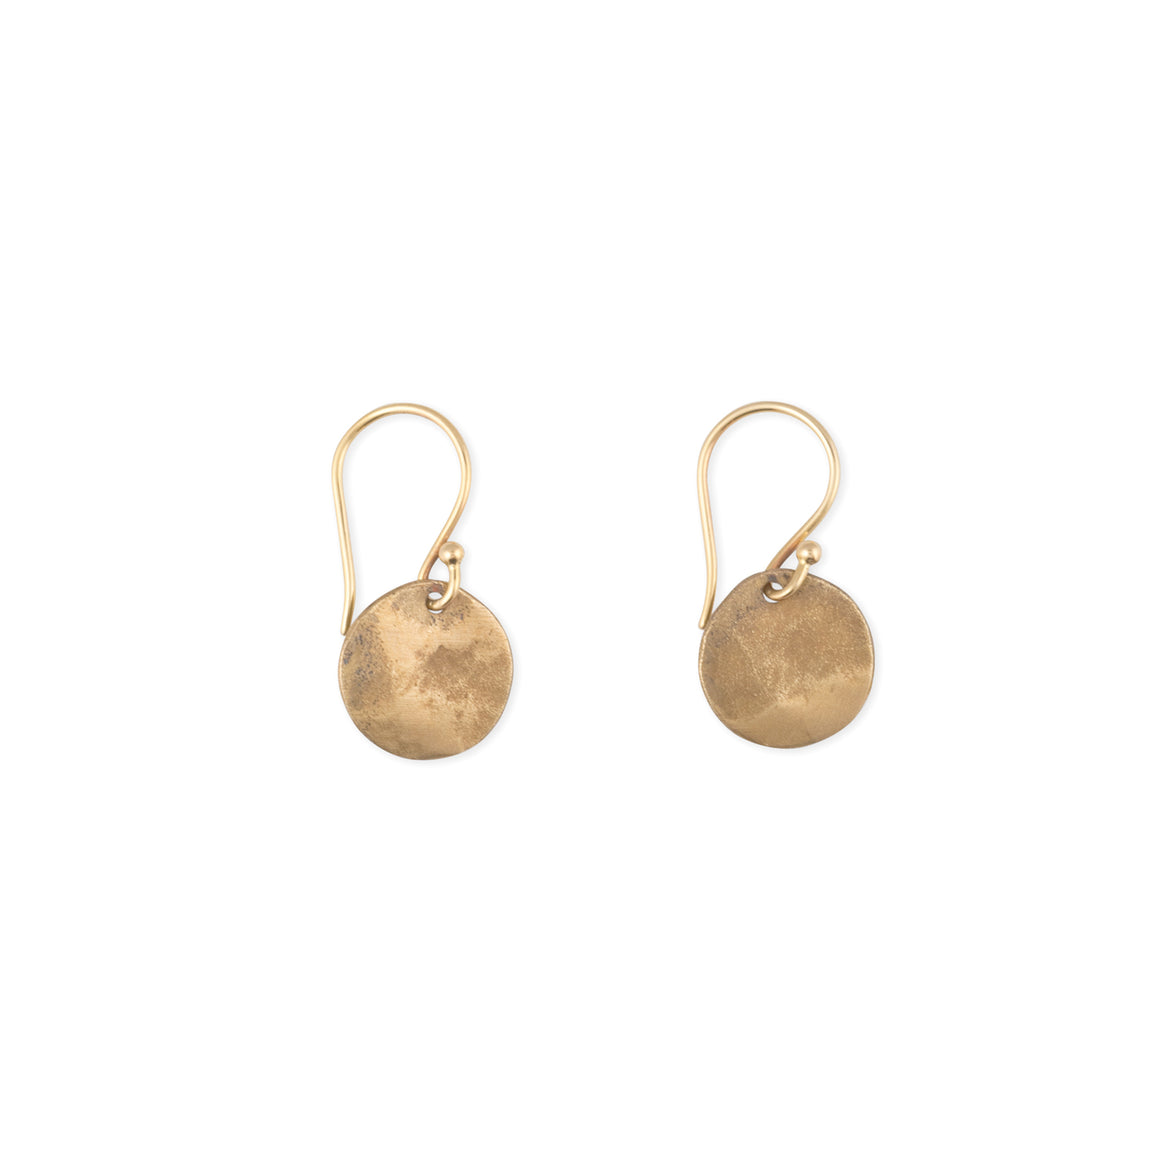 handcrafted-earrings-disc-silver-bronze-small-round